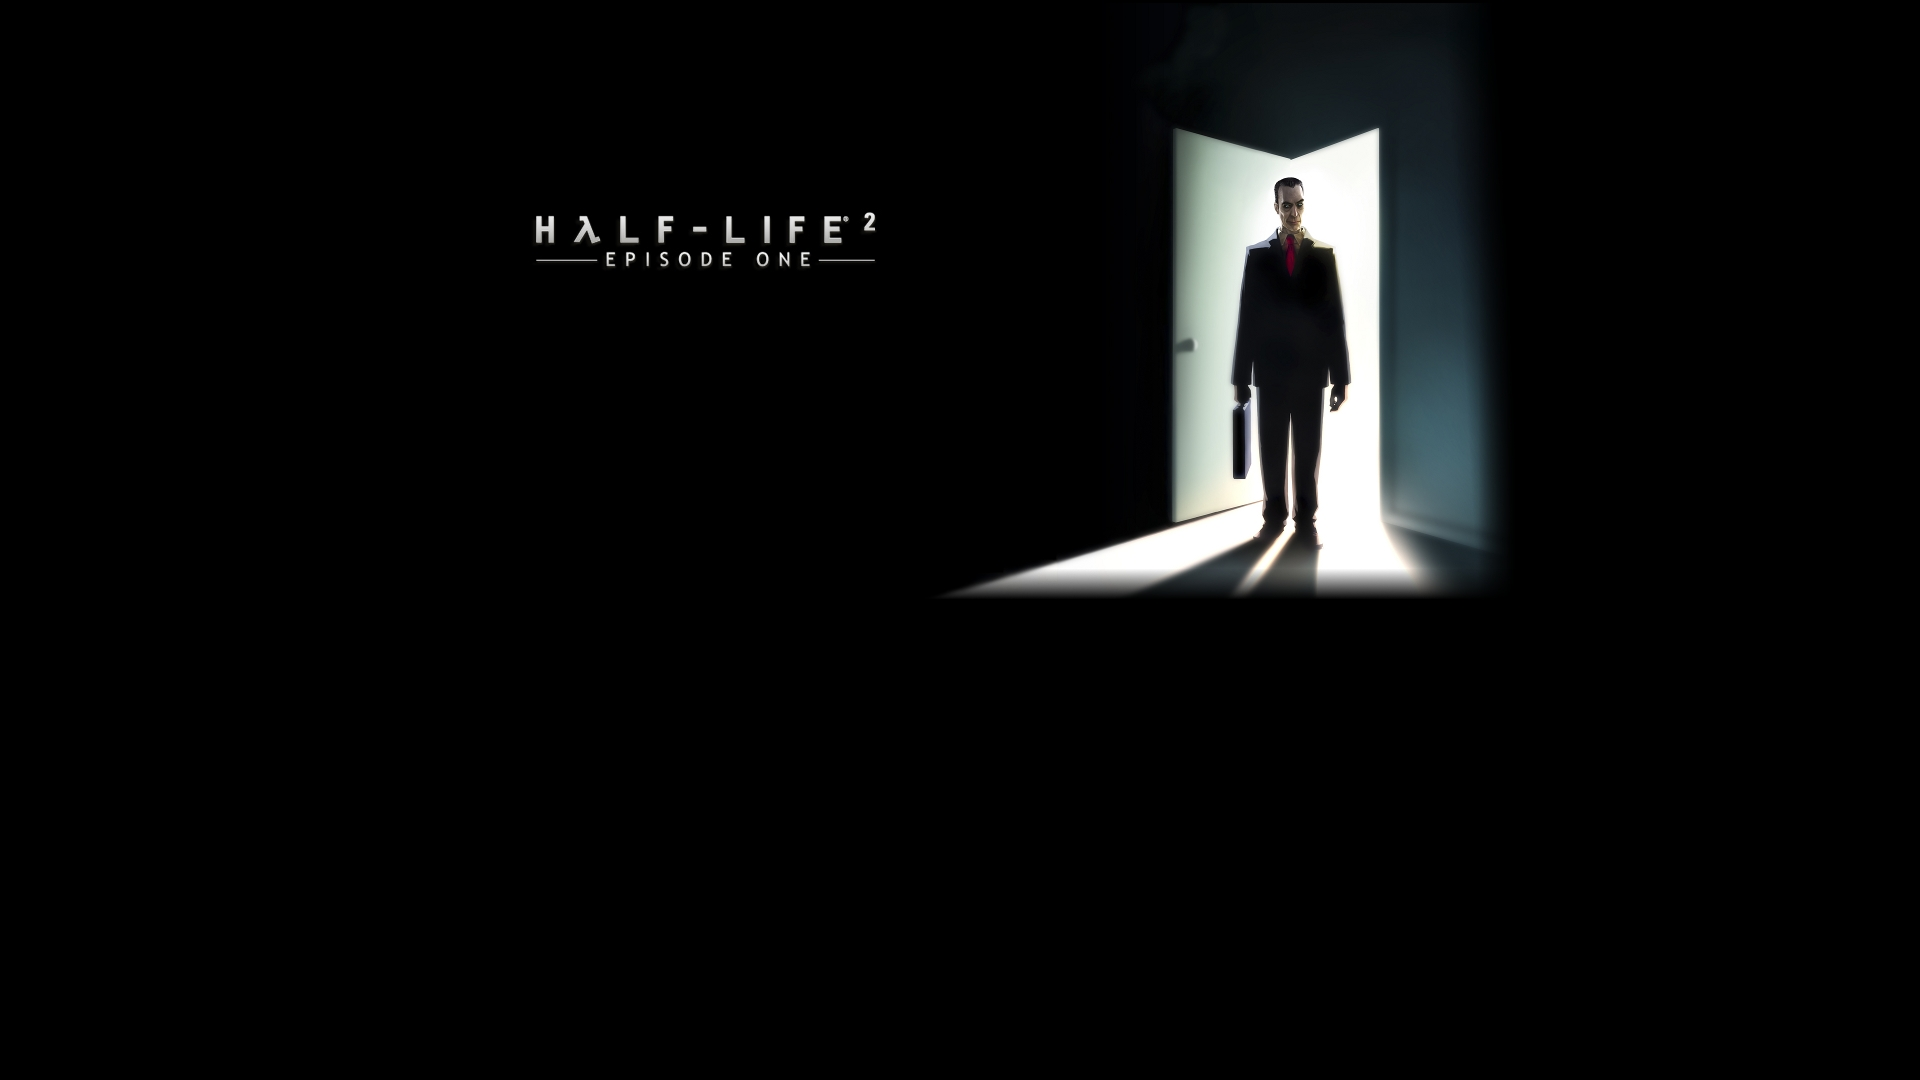 Half Life 2 Episode One Wallpaper HD